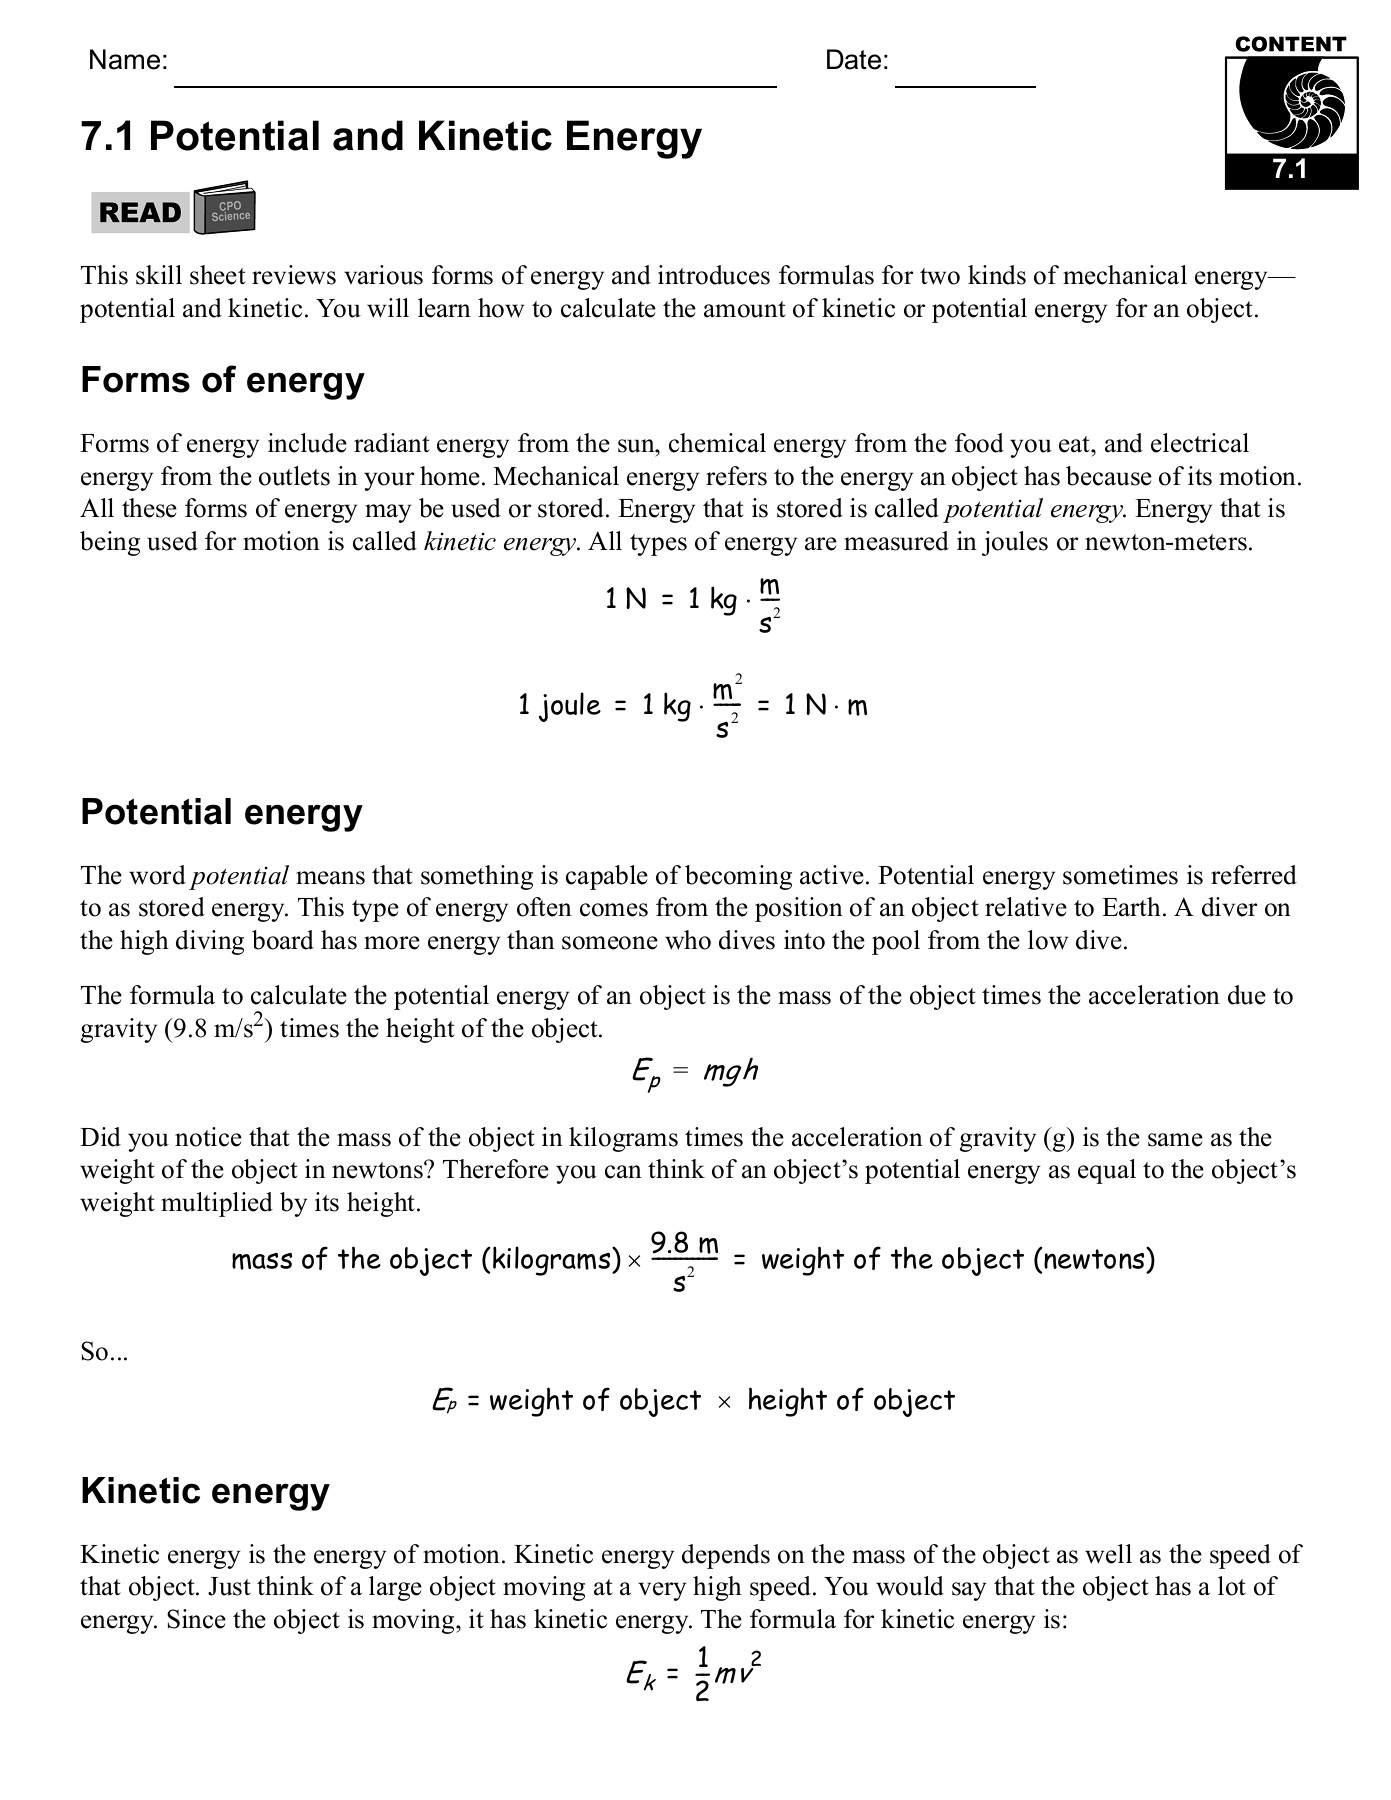 7.1 Potential and Kinetic Energy - CPO Science Pages 1 - 29 - Text ...